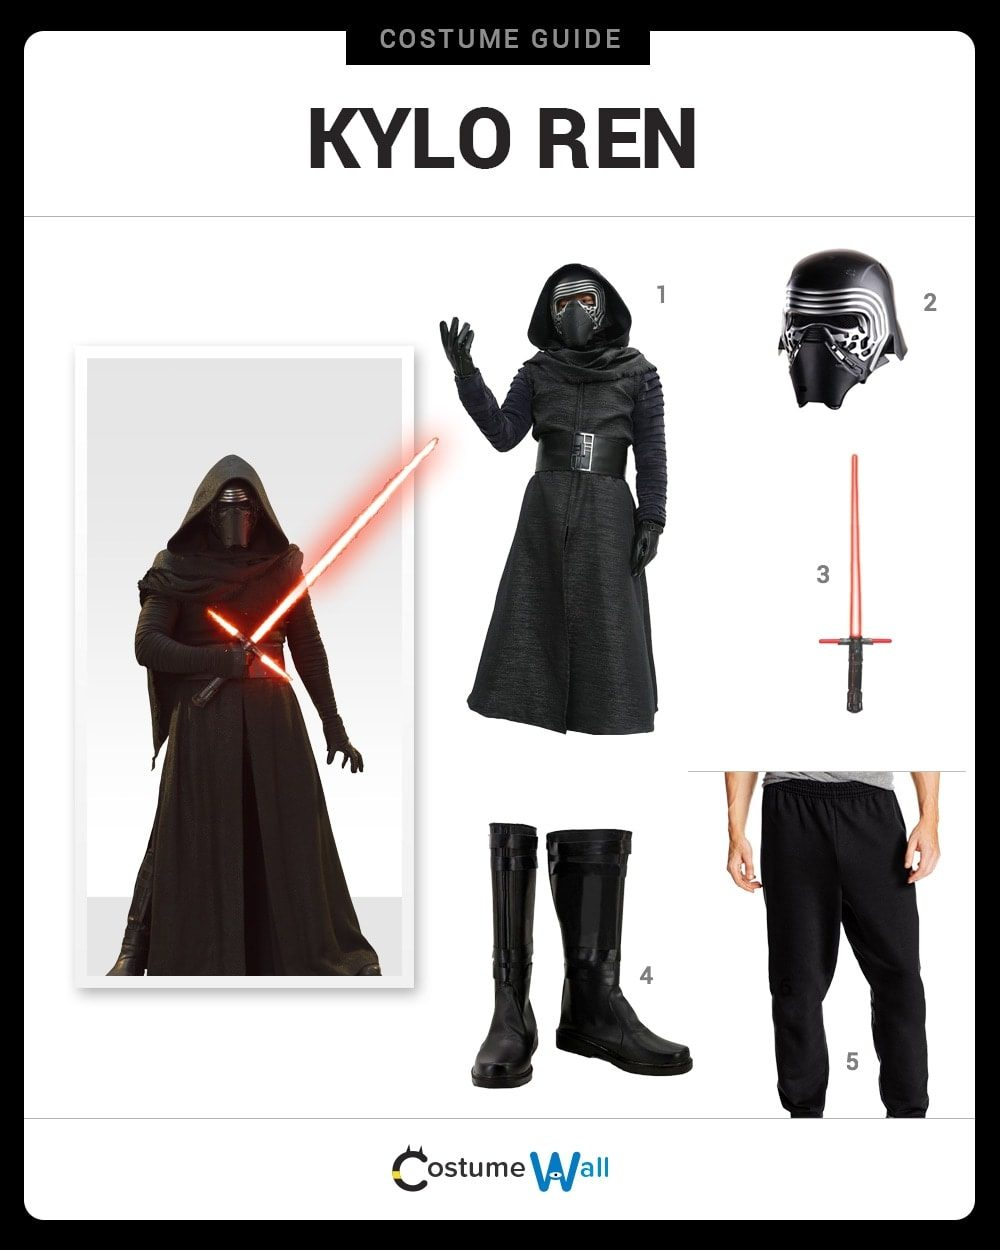 Kylo Ren Costume Guide